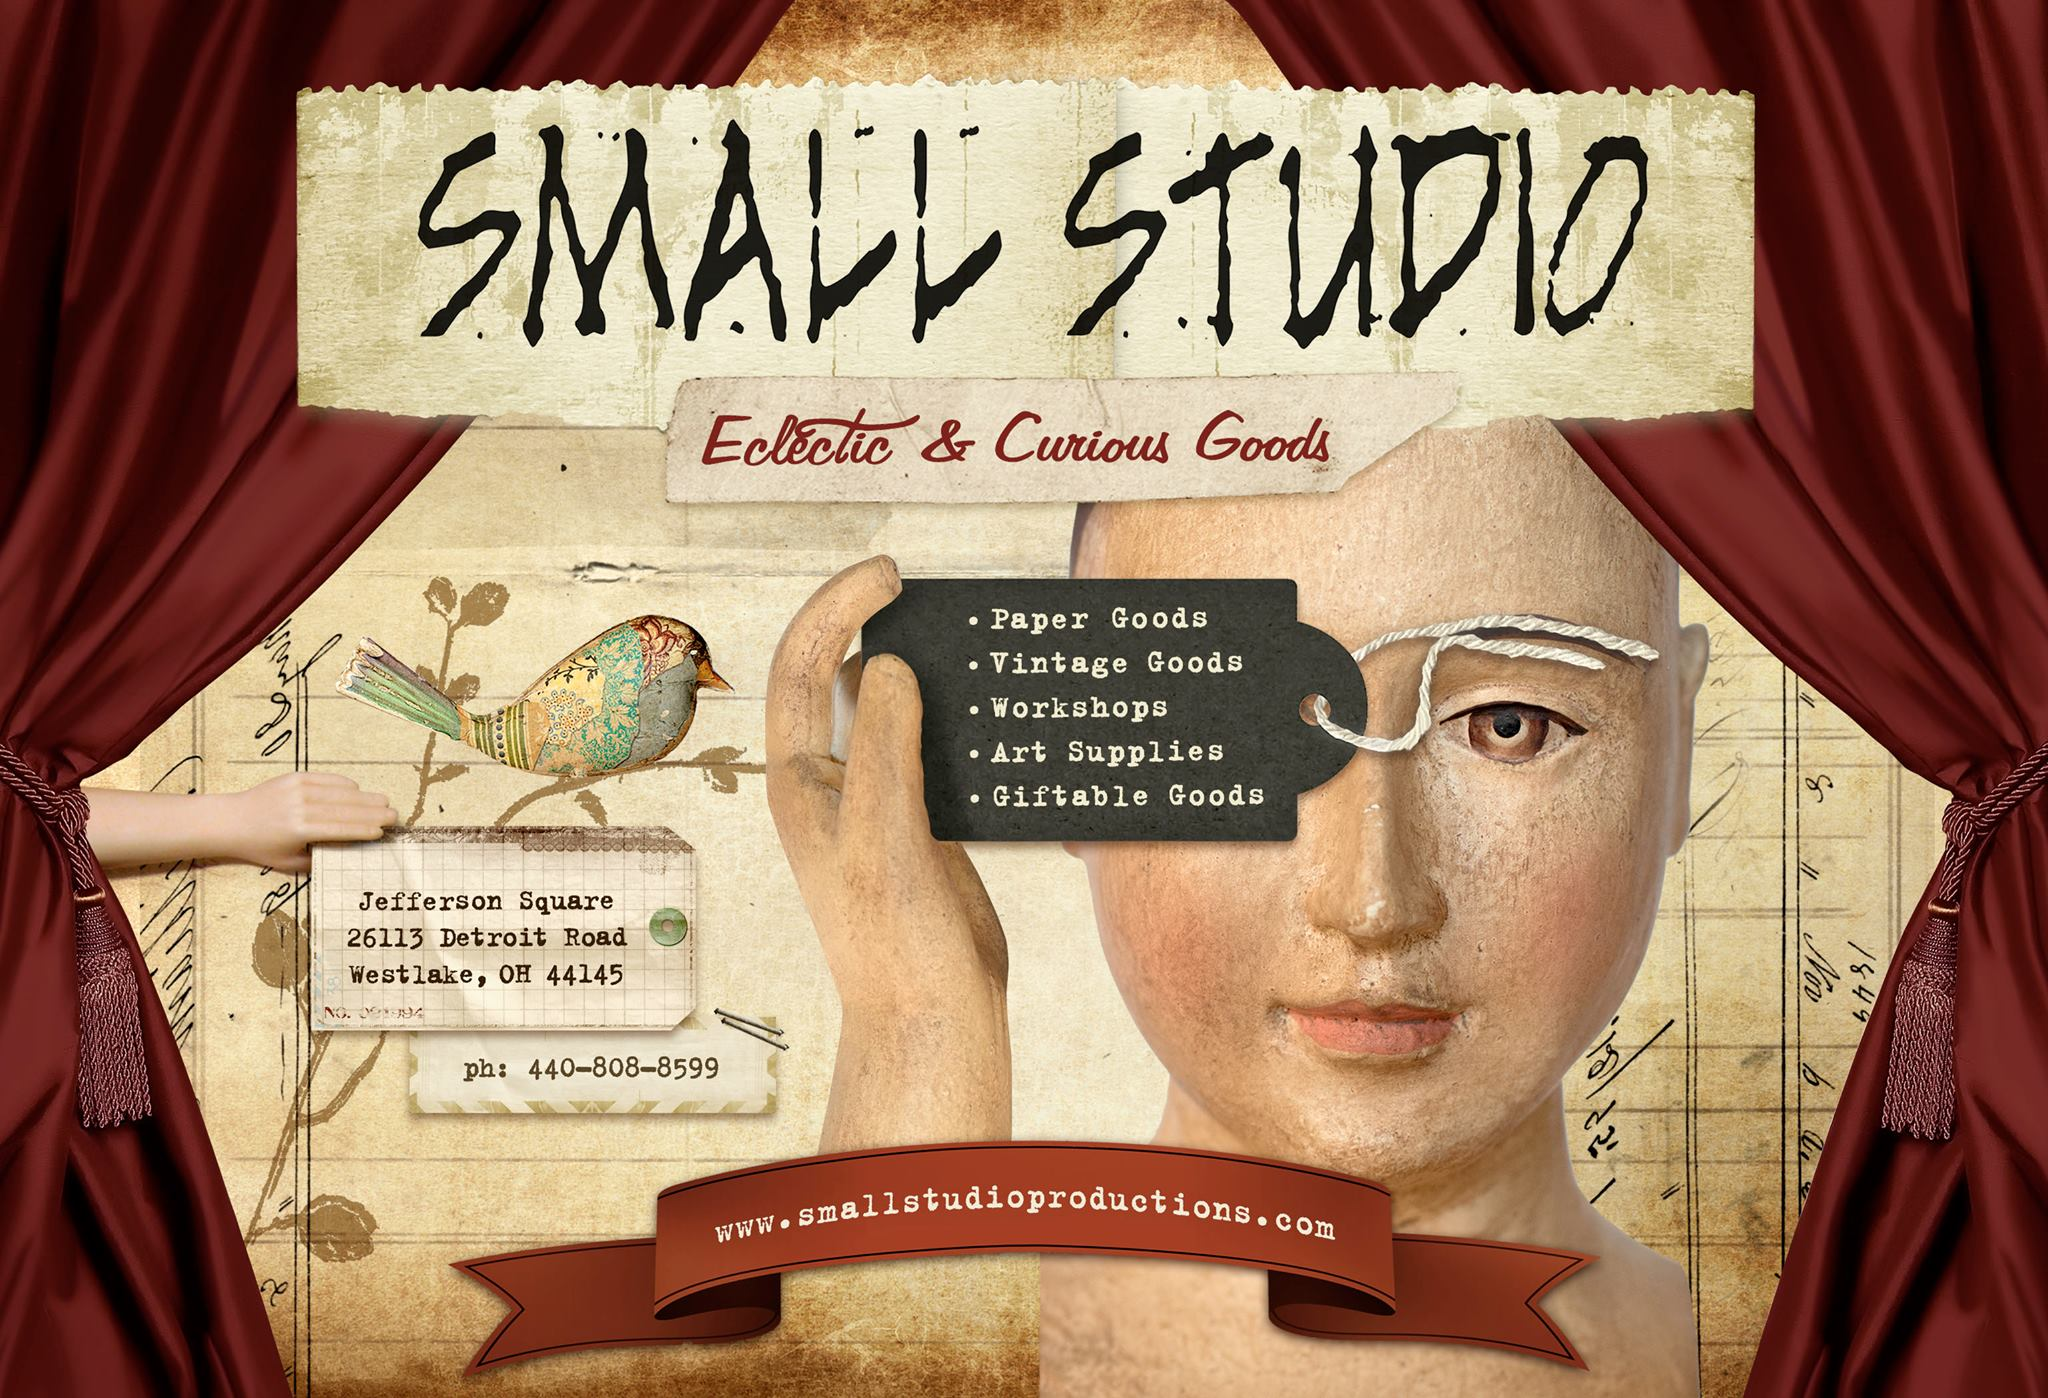 Graphic showing Small Studio Productions offerings and contact information